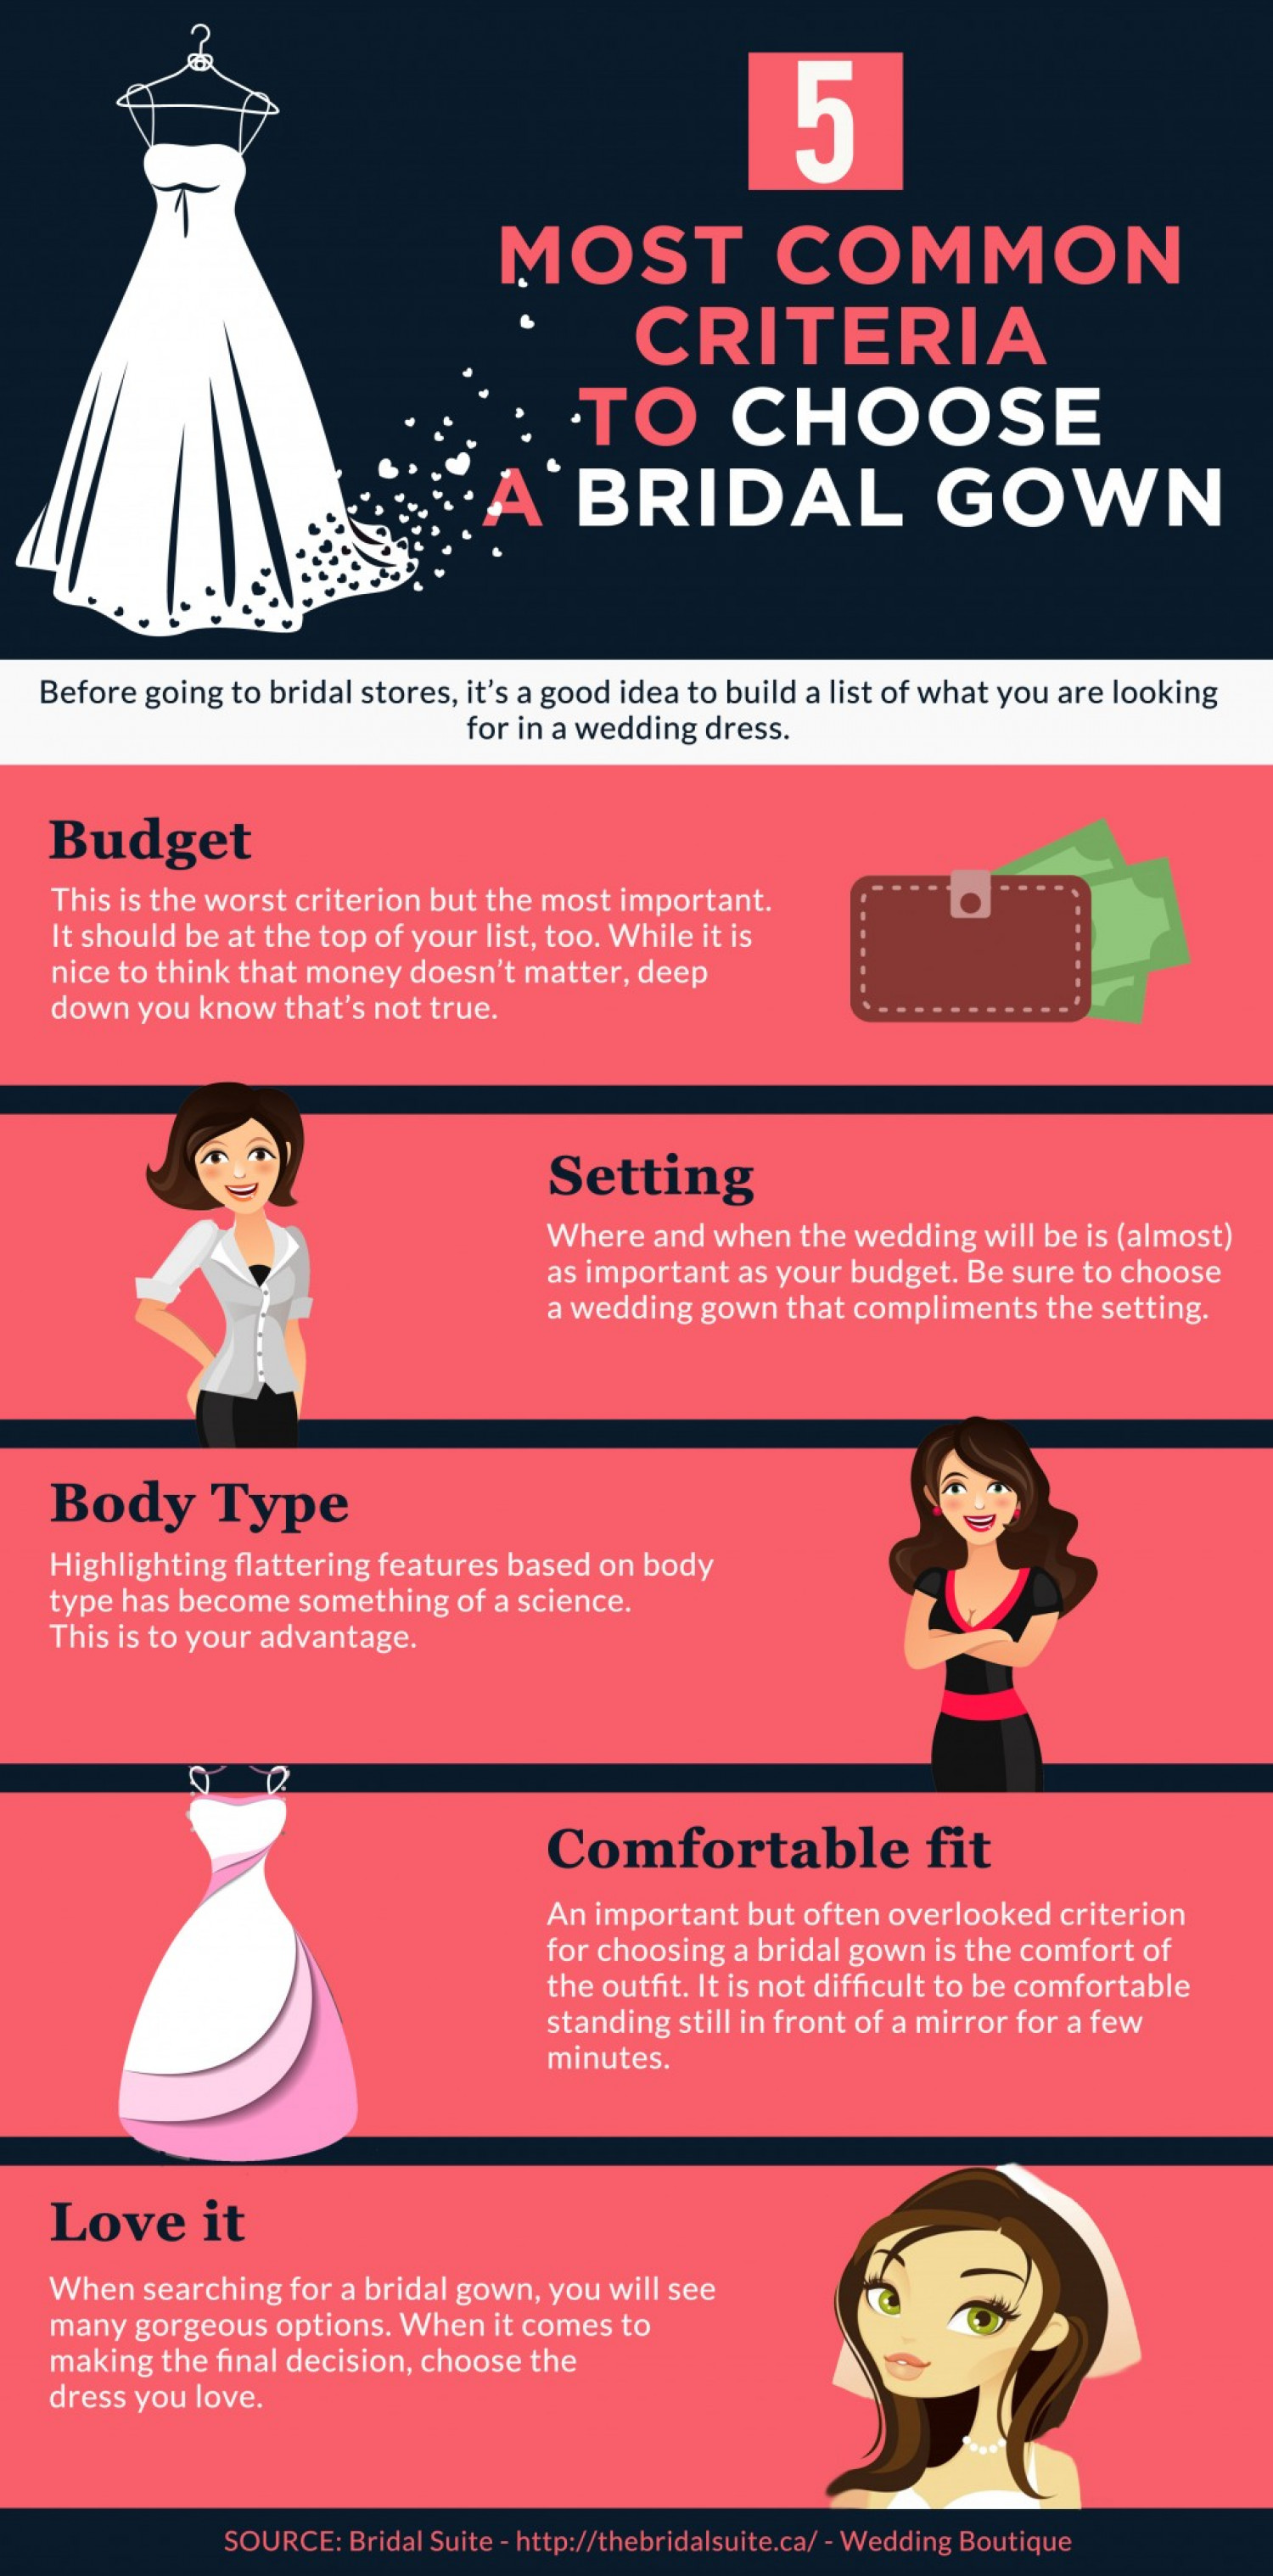 5 Most Common Criteria To Choose A Bridal Gown Visual